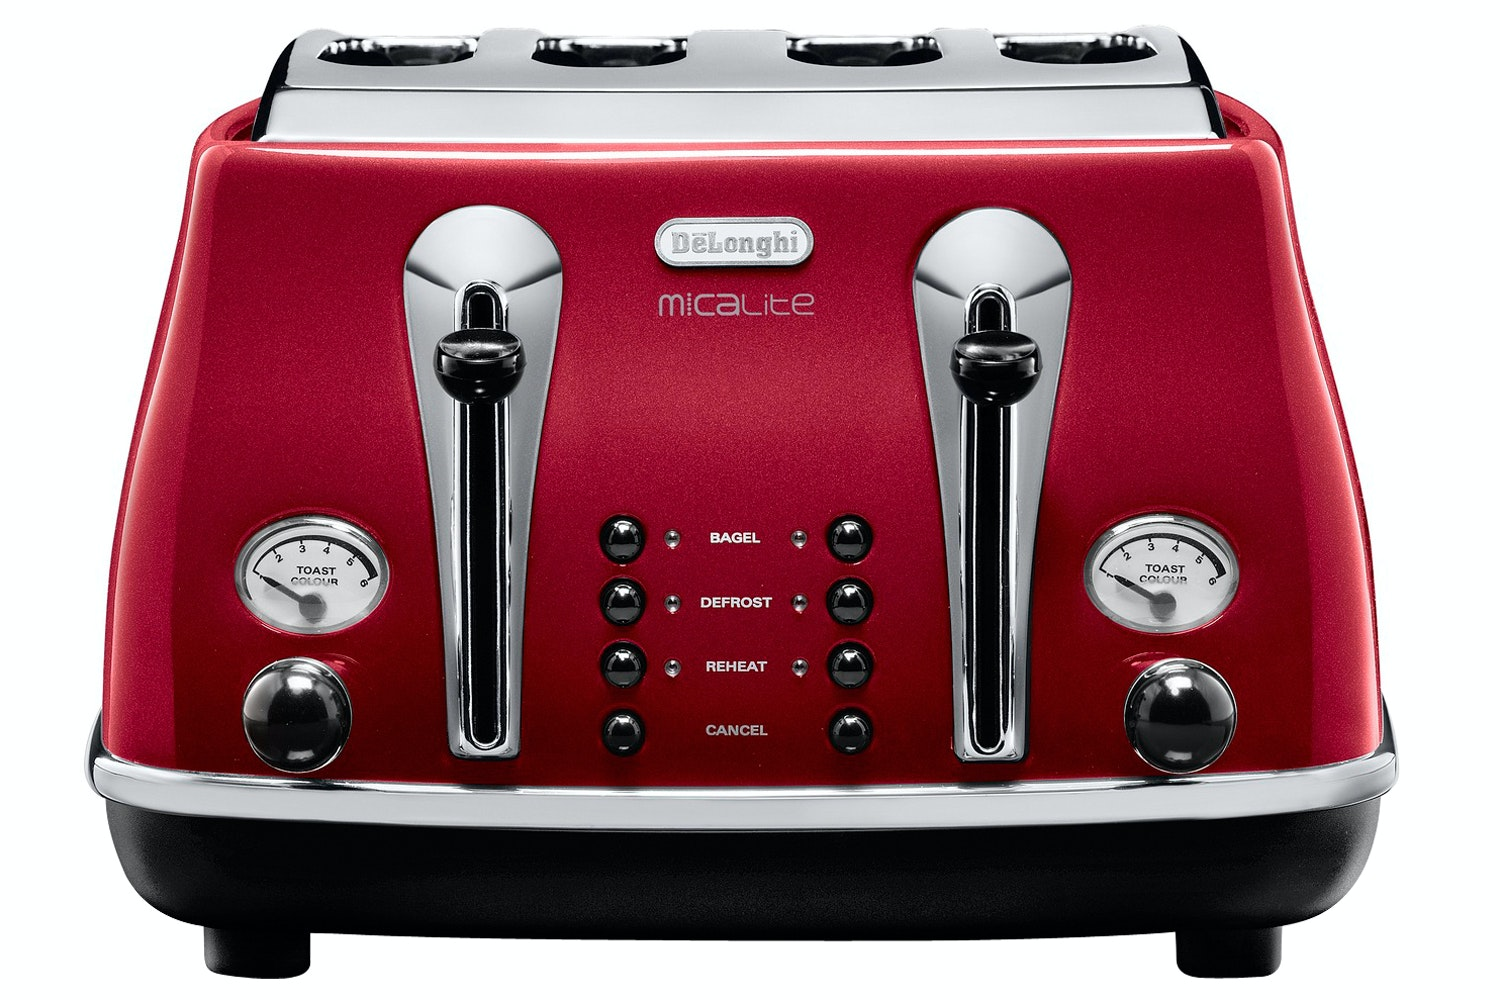 DeLonghi 4 Slice Micalite Toaster | Red